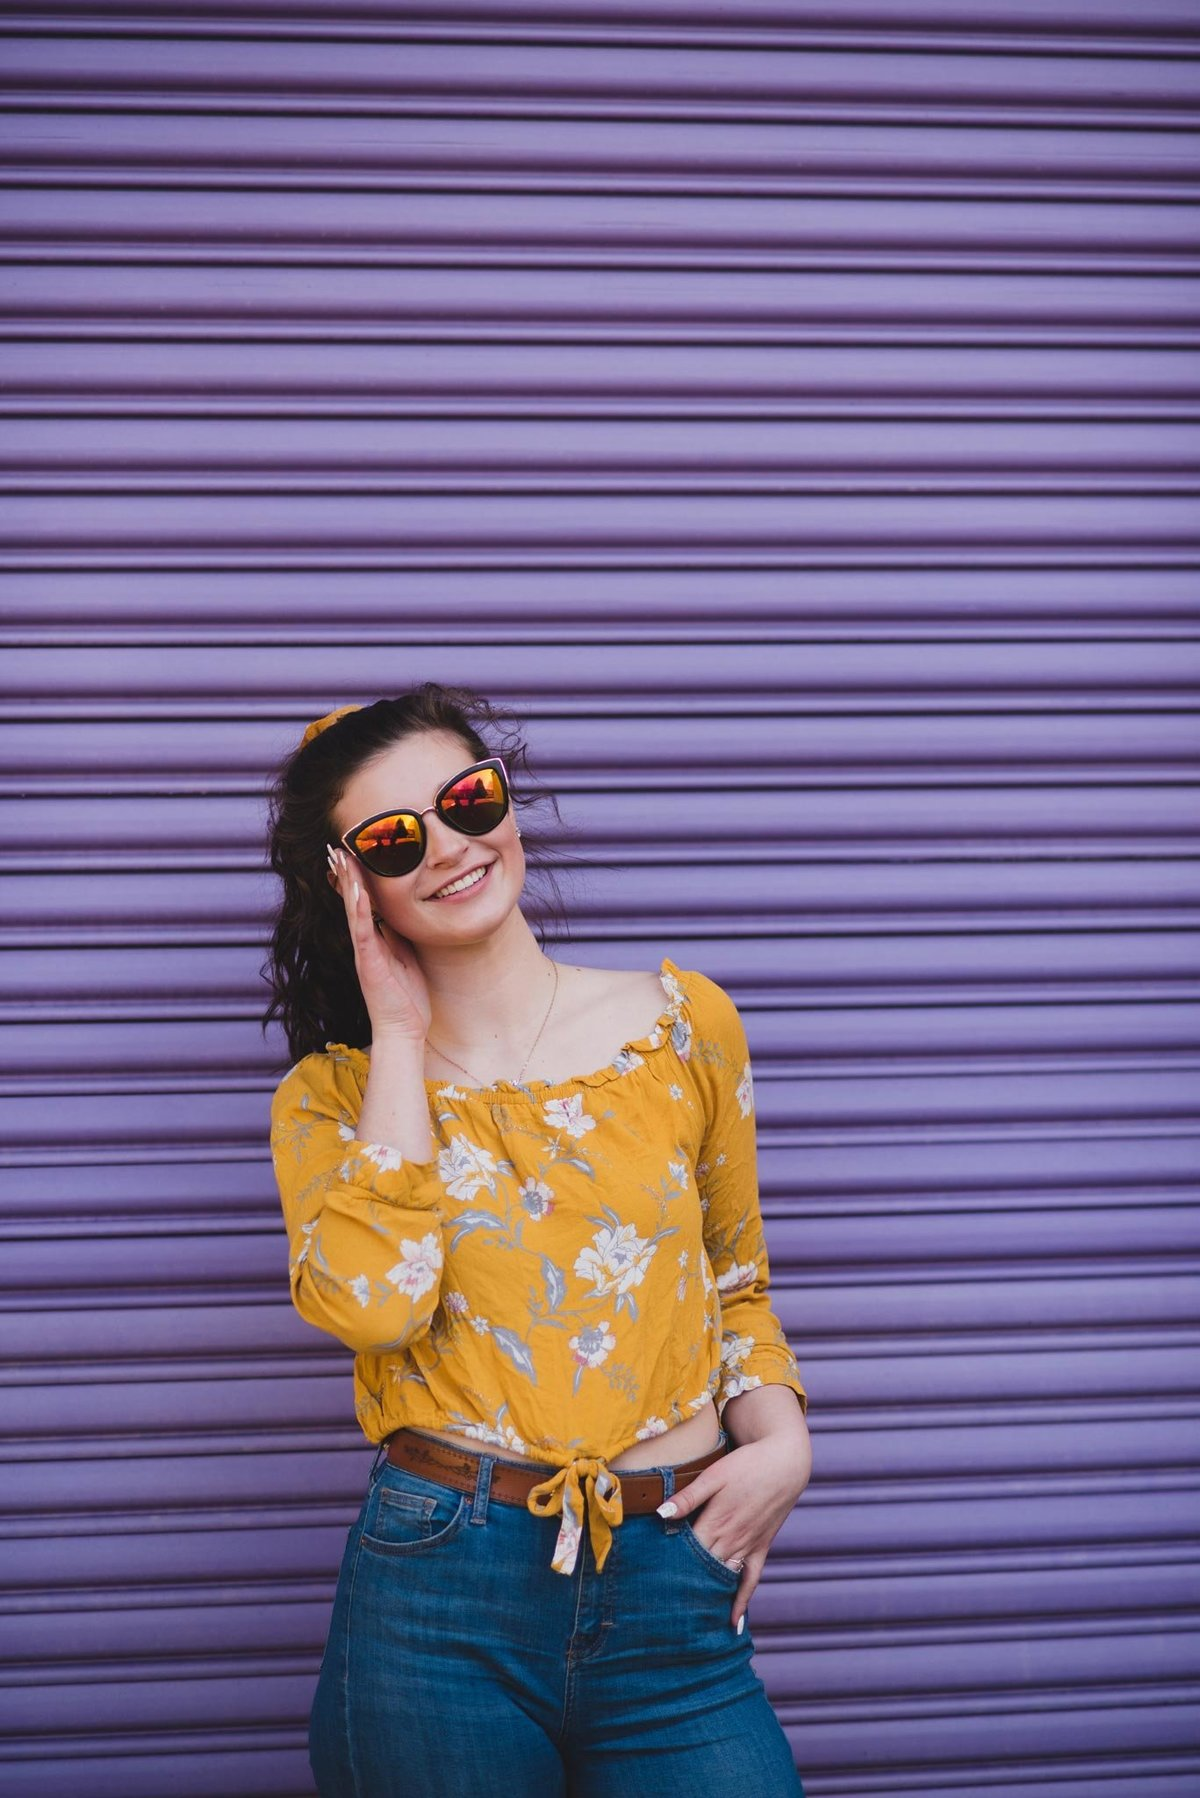 Tukwila-Senior-portraits-purple-wall-AmandaHowse-1-sunglasses